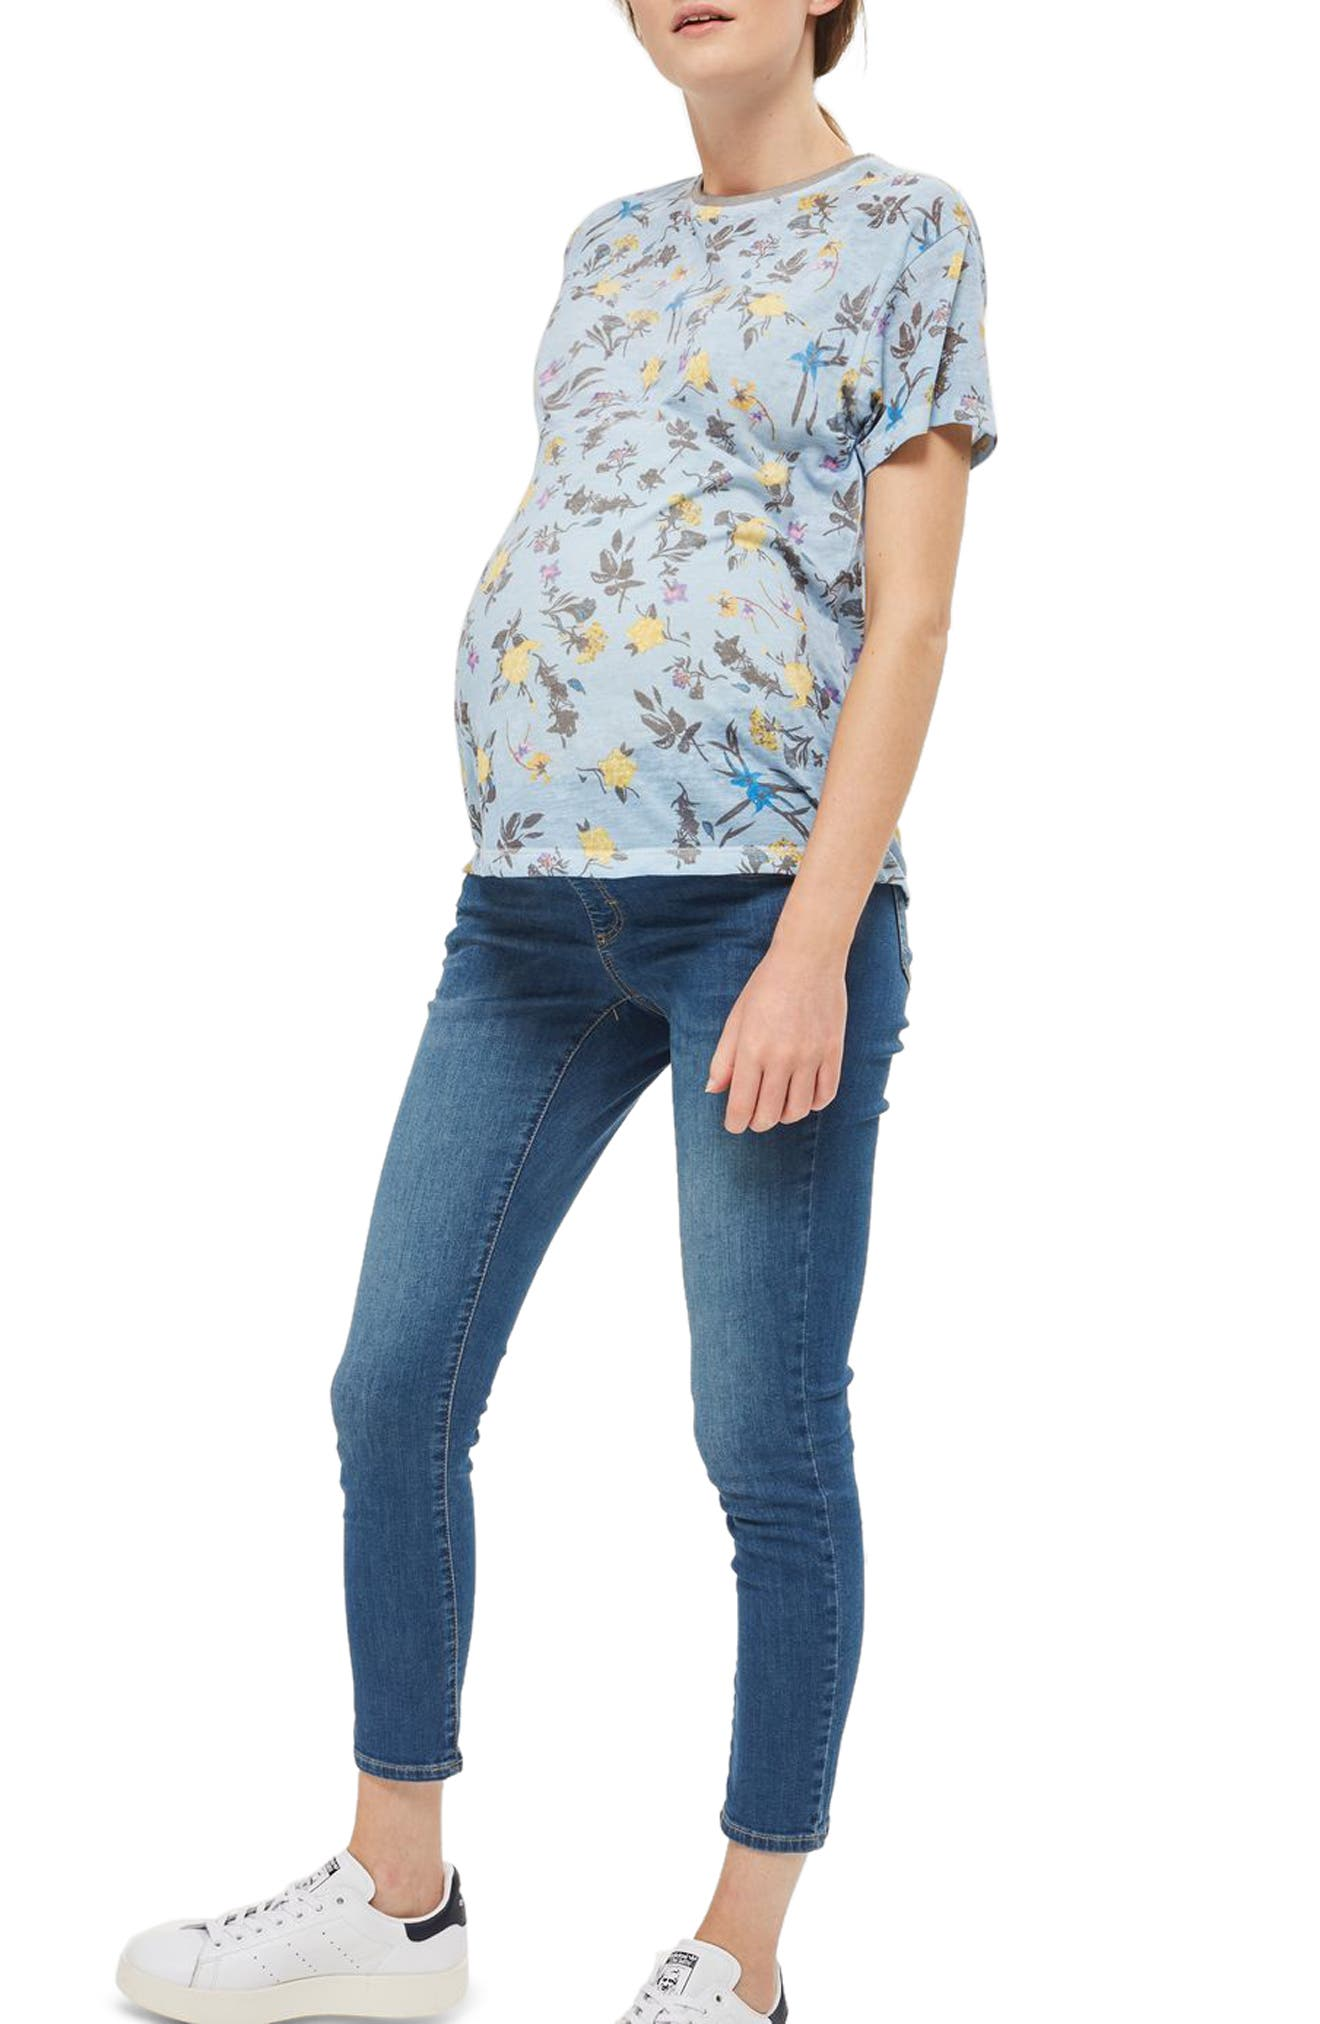 Topshop Floral Maternity Tee